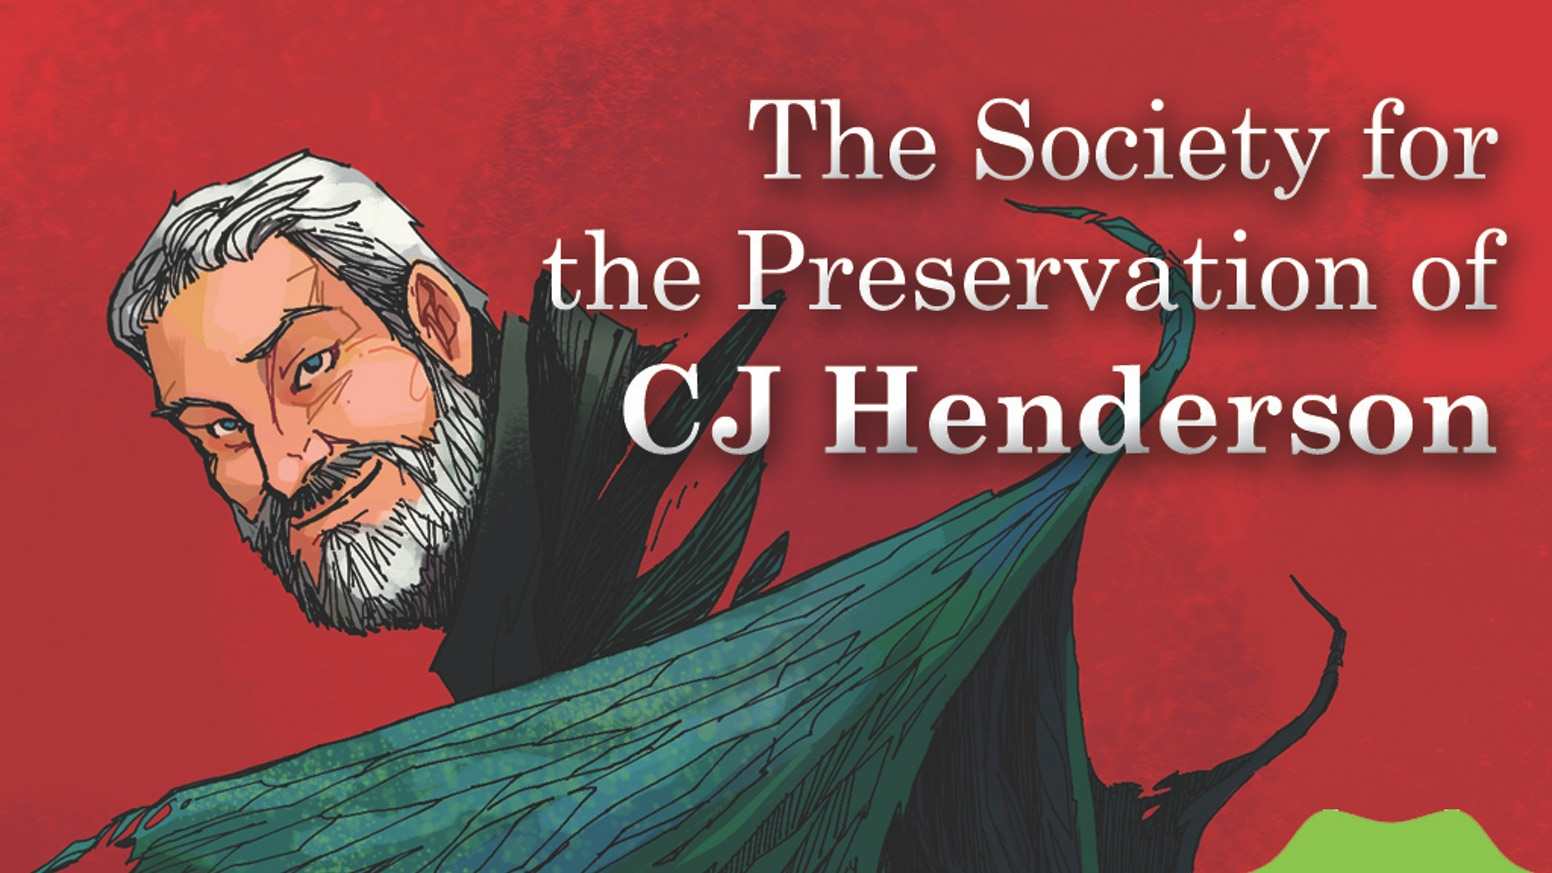 A Memorial anthology based on the late, great CJ Henderson and his works, compiled by his friends and fellow authors.